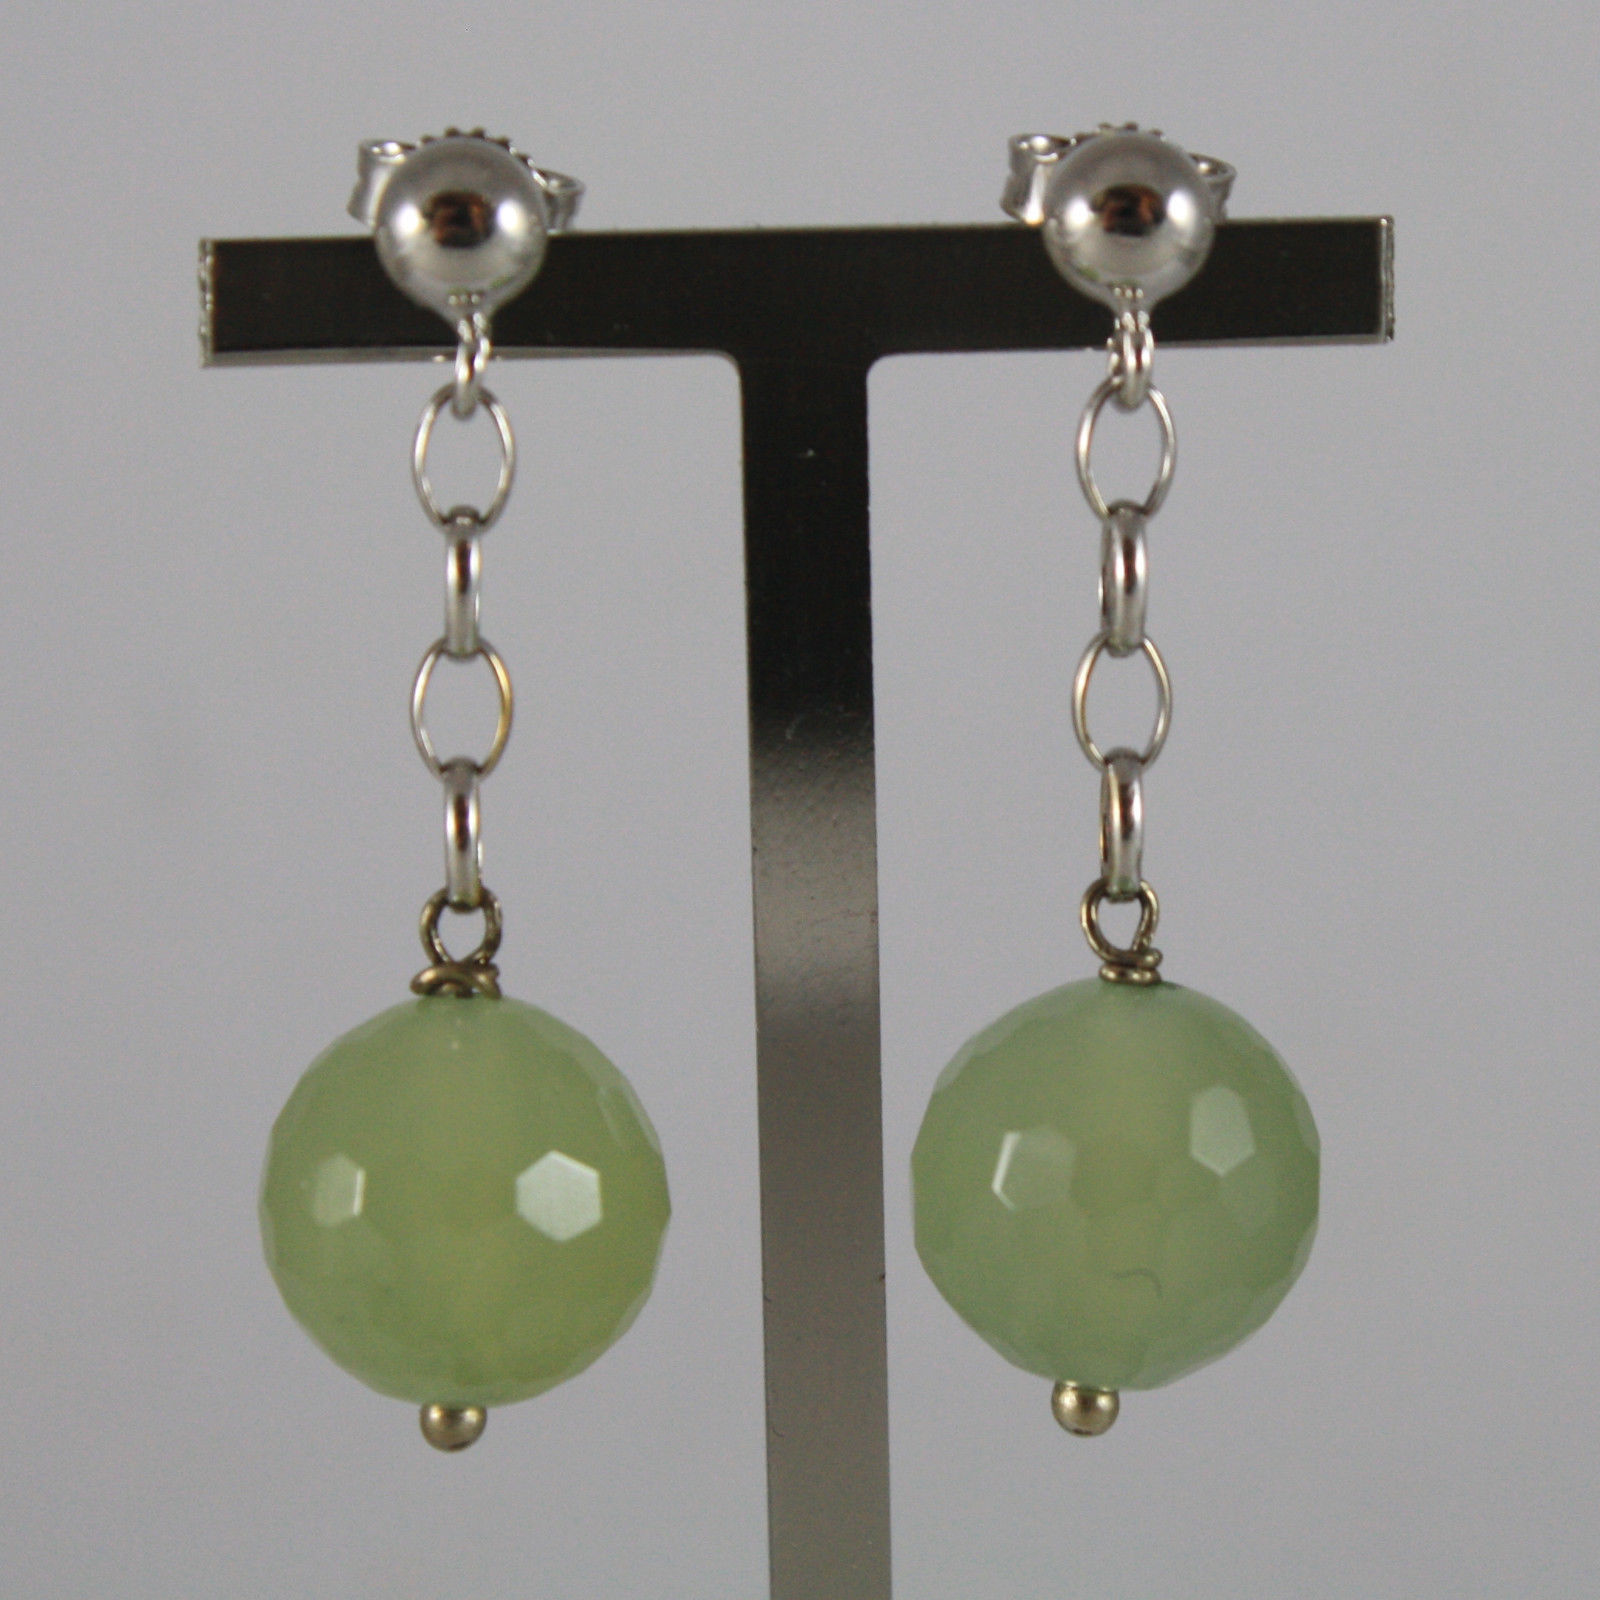 SOLID 18K WHITE GOLD EARRINGS, WITH FACETED GREEN JADE,  MADE IN ITALY